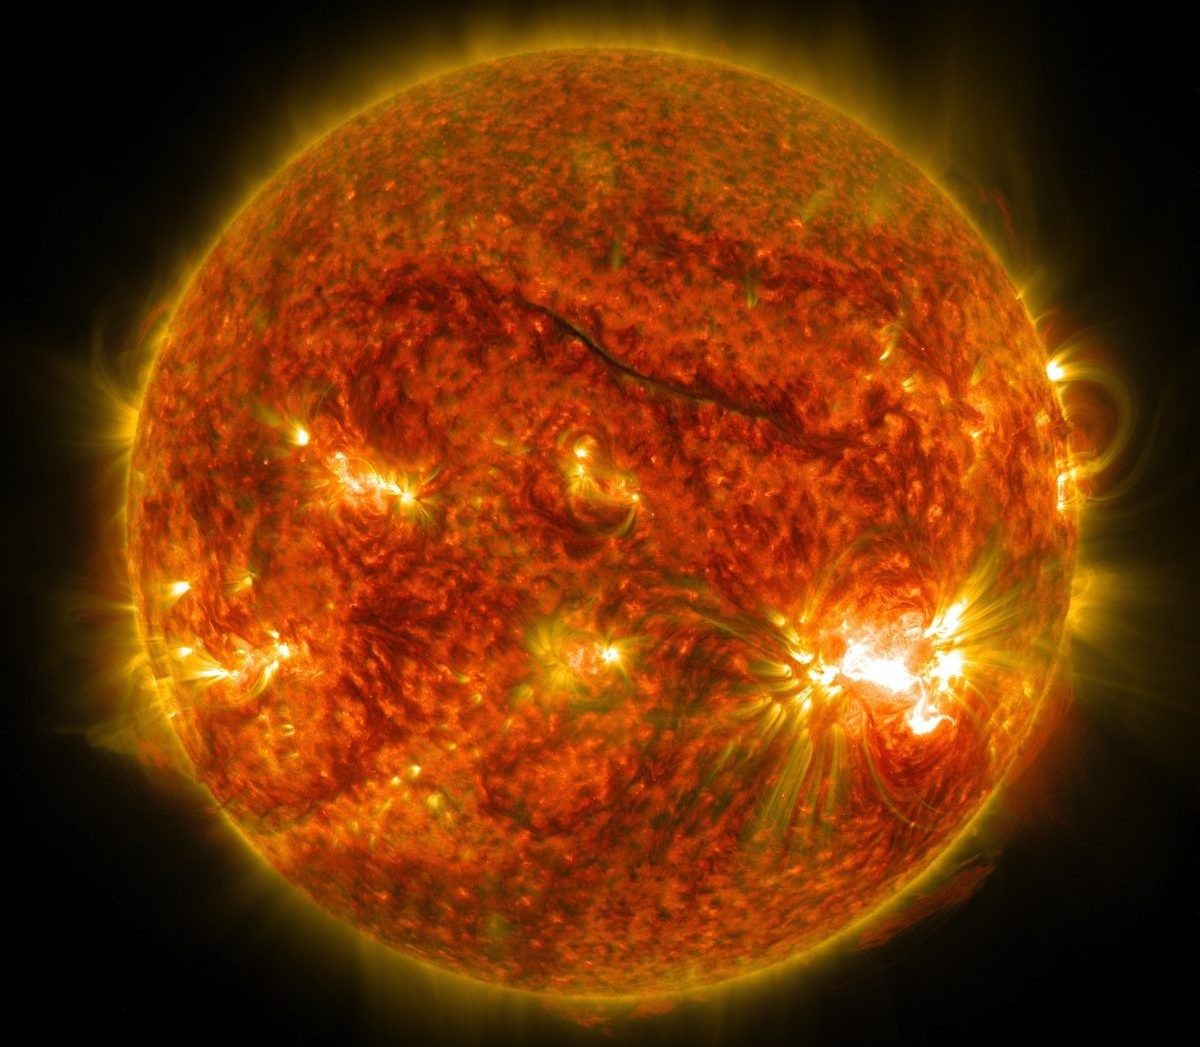 An image of the Sun showing solar flares erupting from its surface, the largest of which can be seen on the lower right. The image was captured by NASA's Solar Dynamics Observatory on 26 October 2014. Credit: NASA/SDO